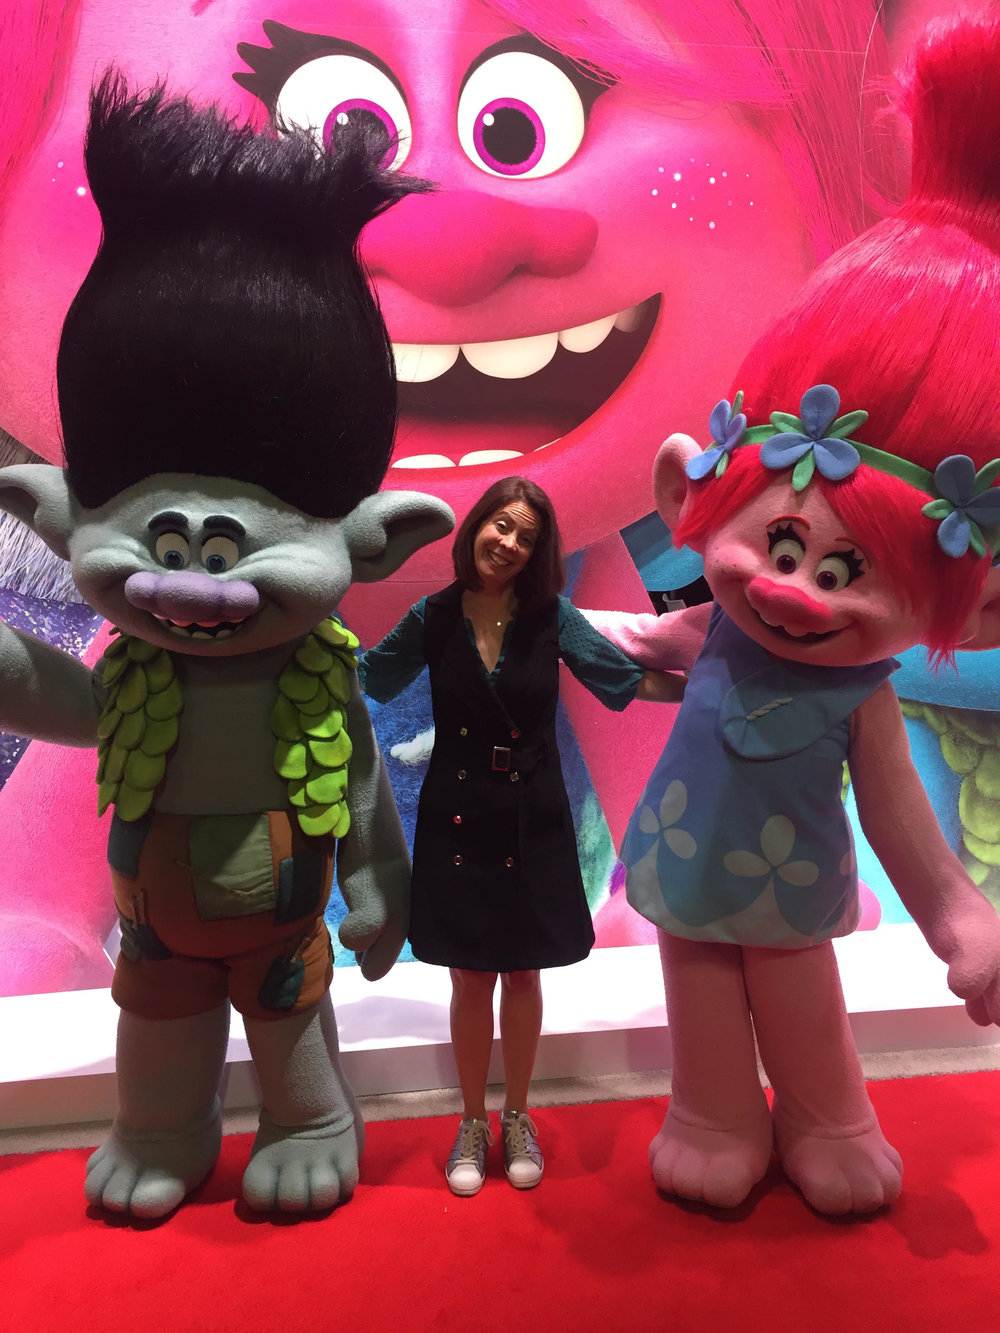 Rachel Leber of Be Well Brands and two friends!